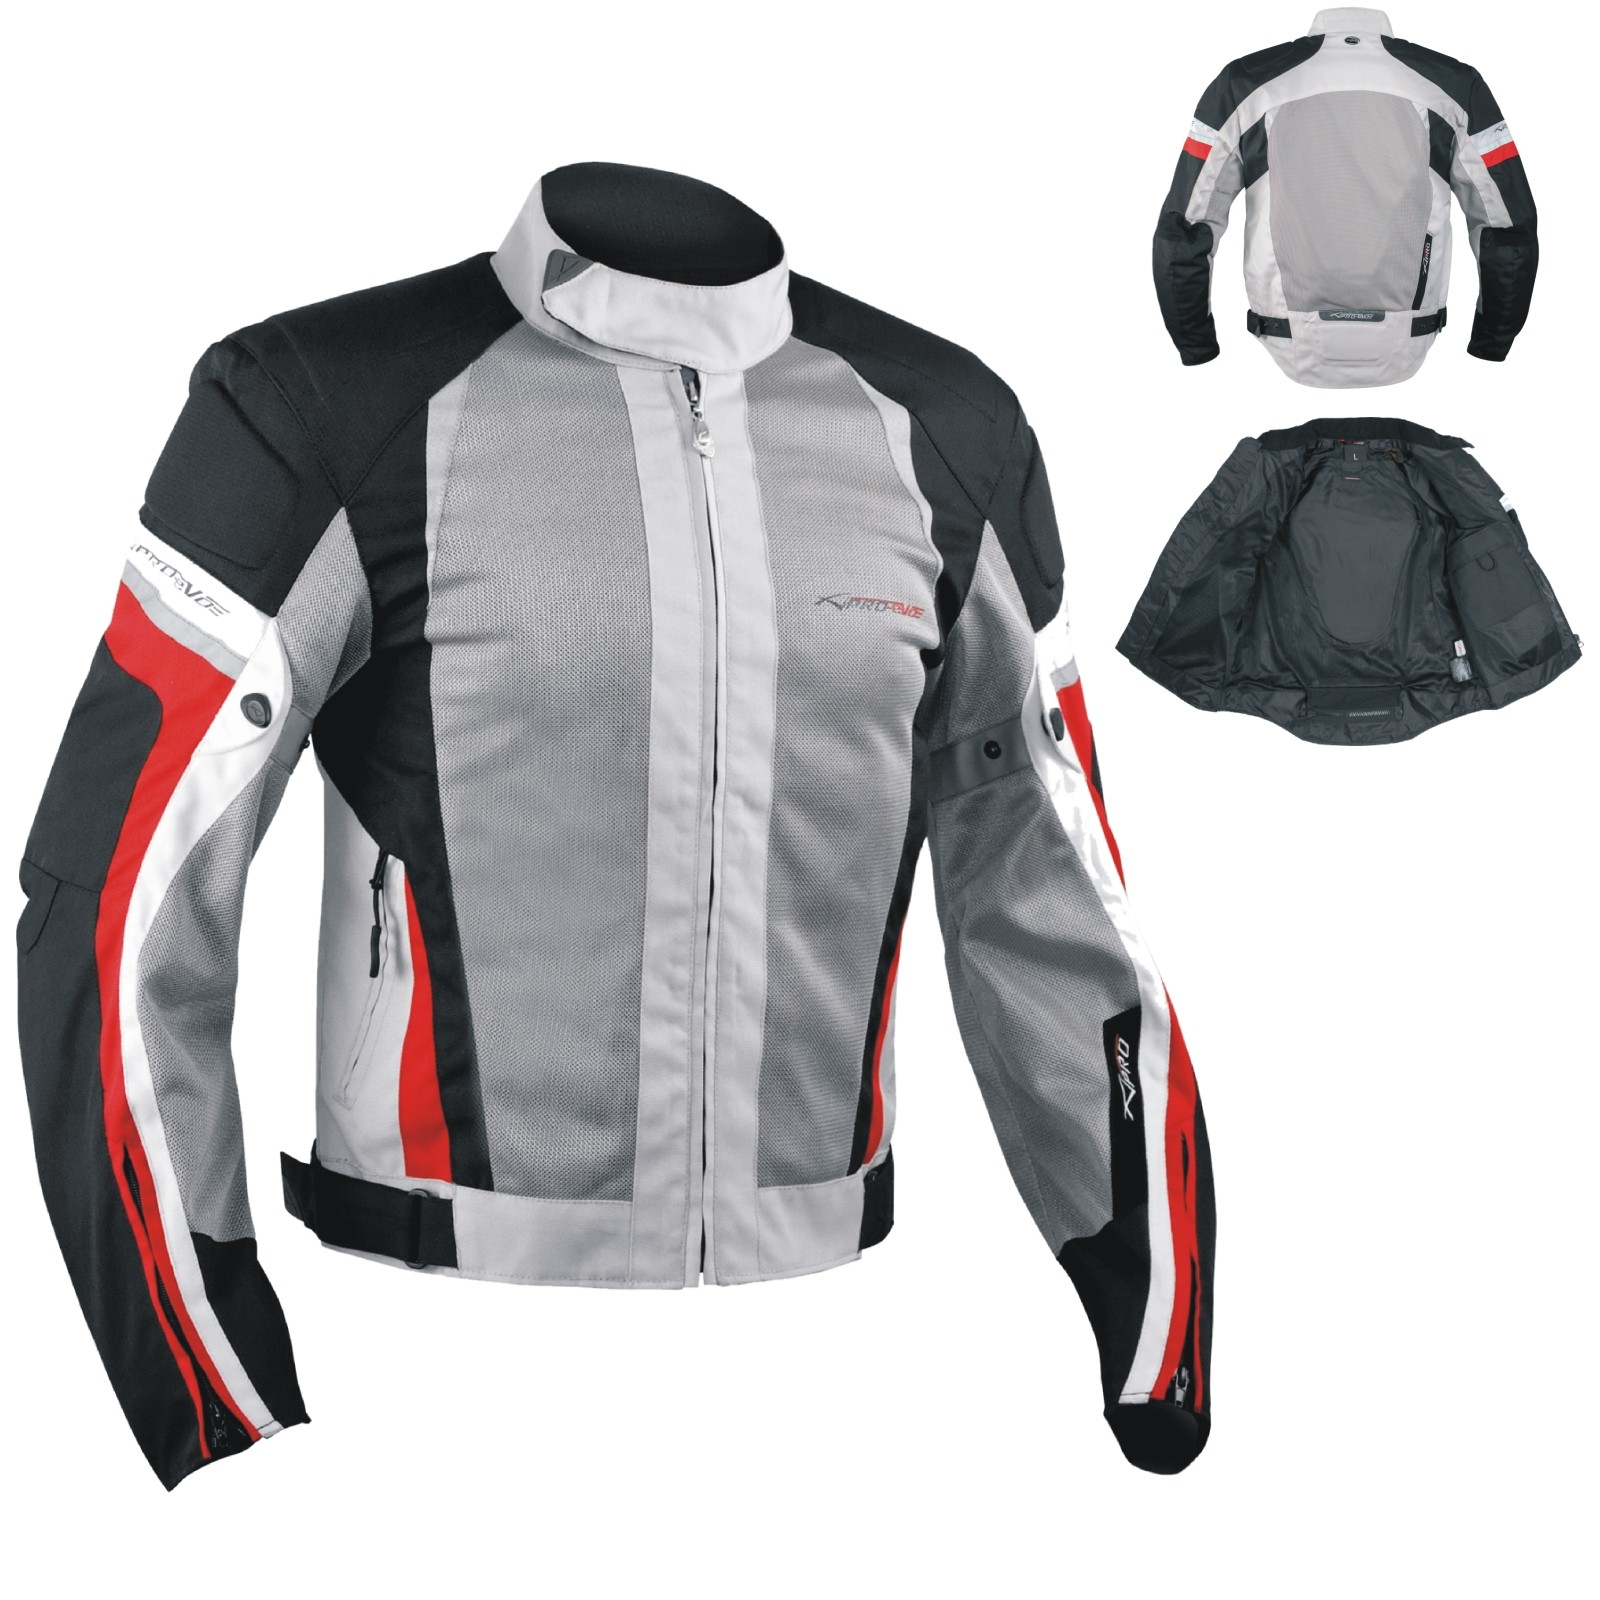 2a4ef1fbc6e Summer Motorbike Mesh Sport Racing Touring CE Armored Jacket Motorcycle  Grey Red. 47% OFF